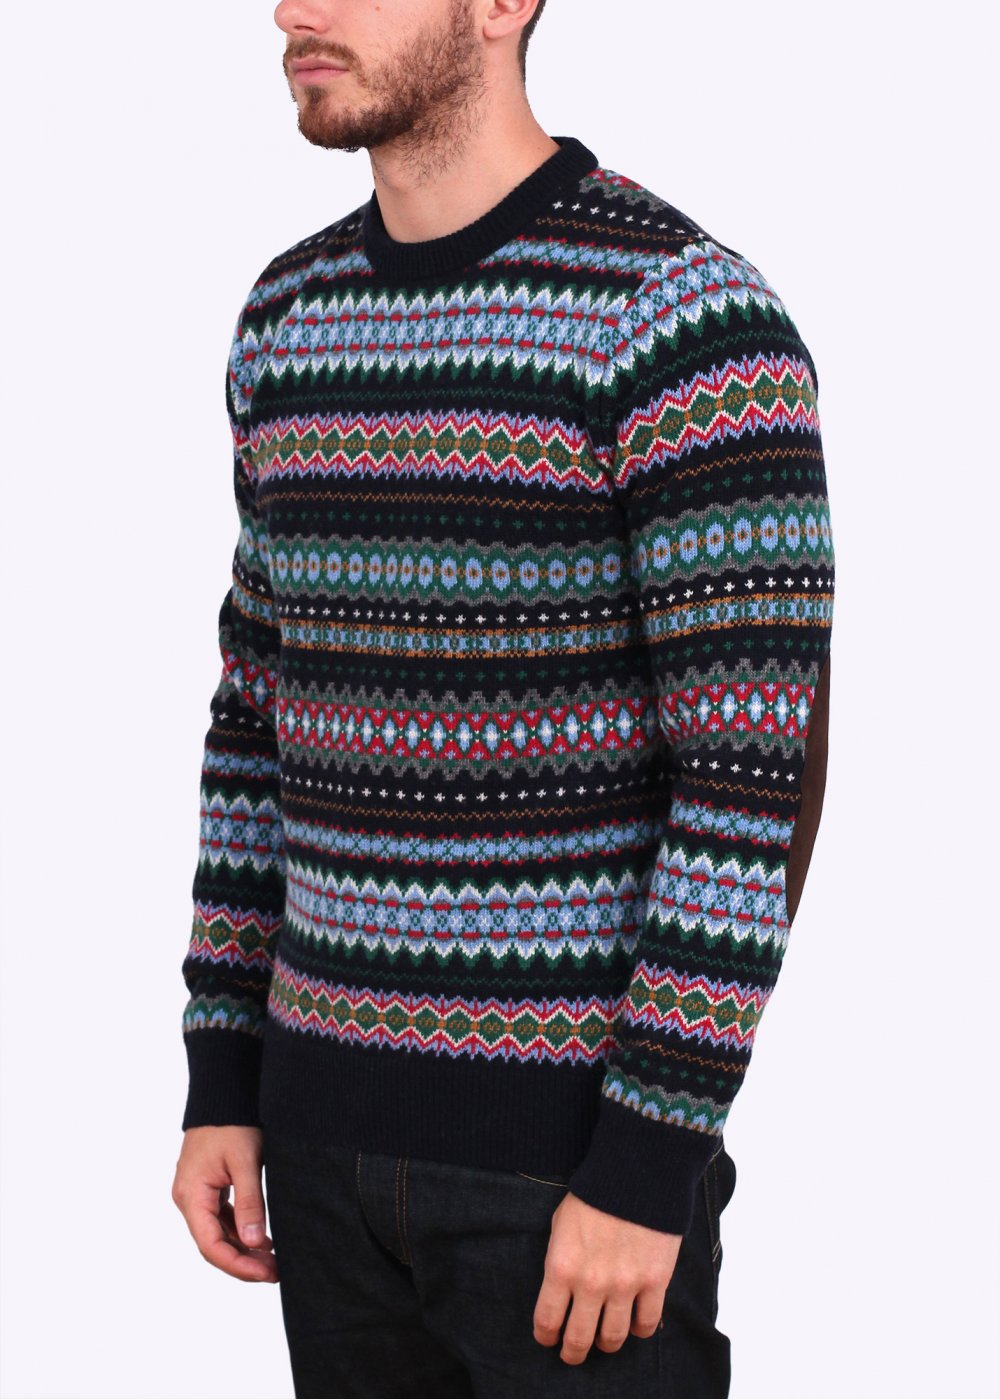 Barbour Heritage Caistown Fair Isle Lambswool Jumper